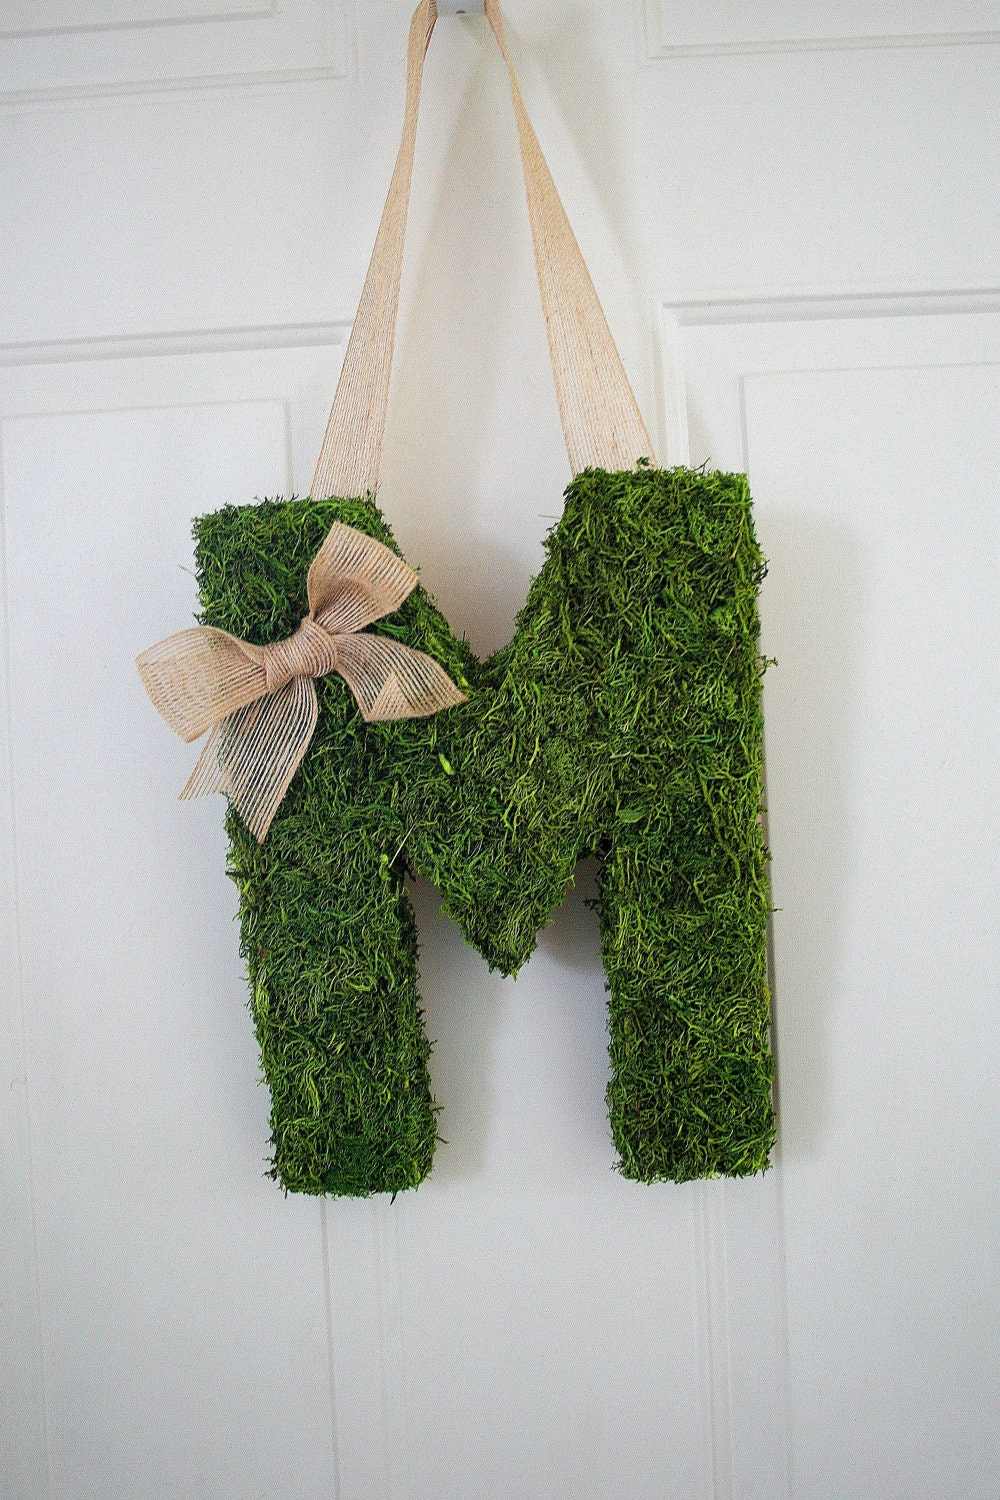 Moss Covered Monogram Letter-Moss Covered Letter Initial Wedding Home Door